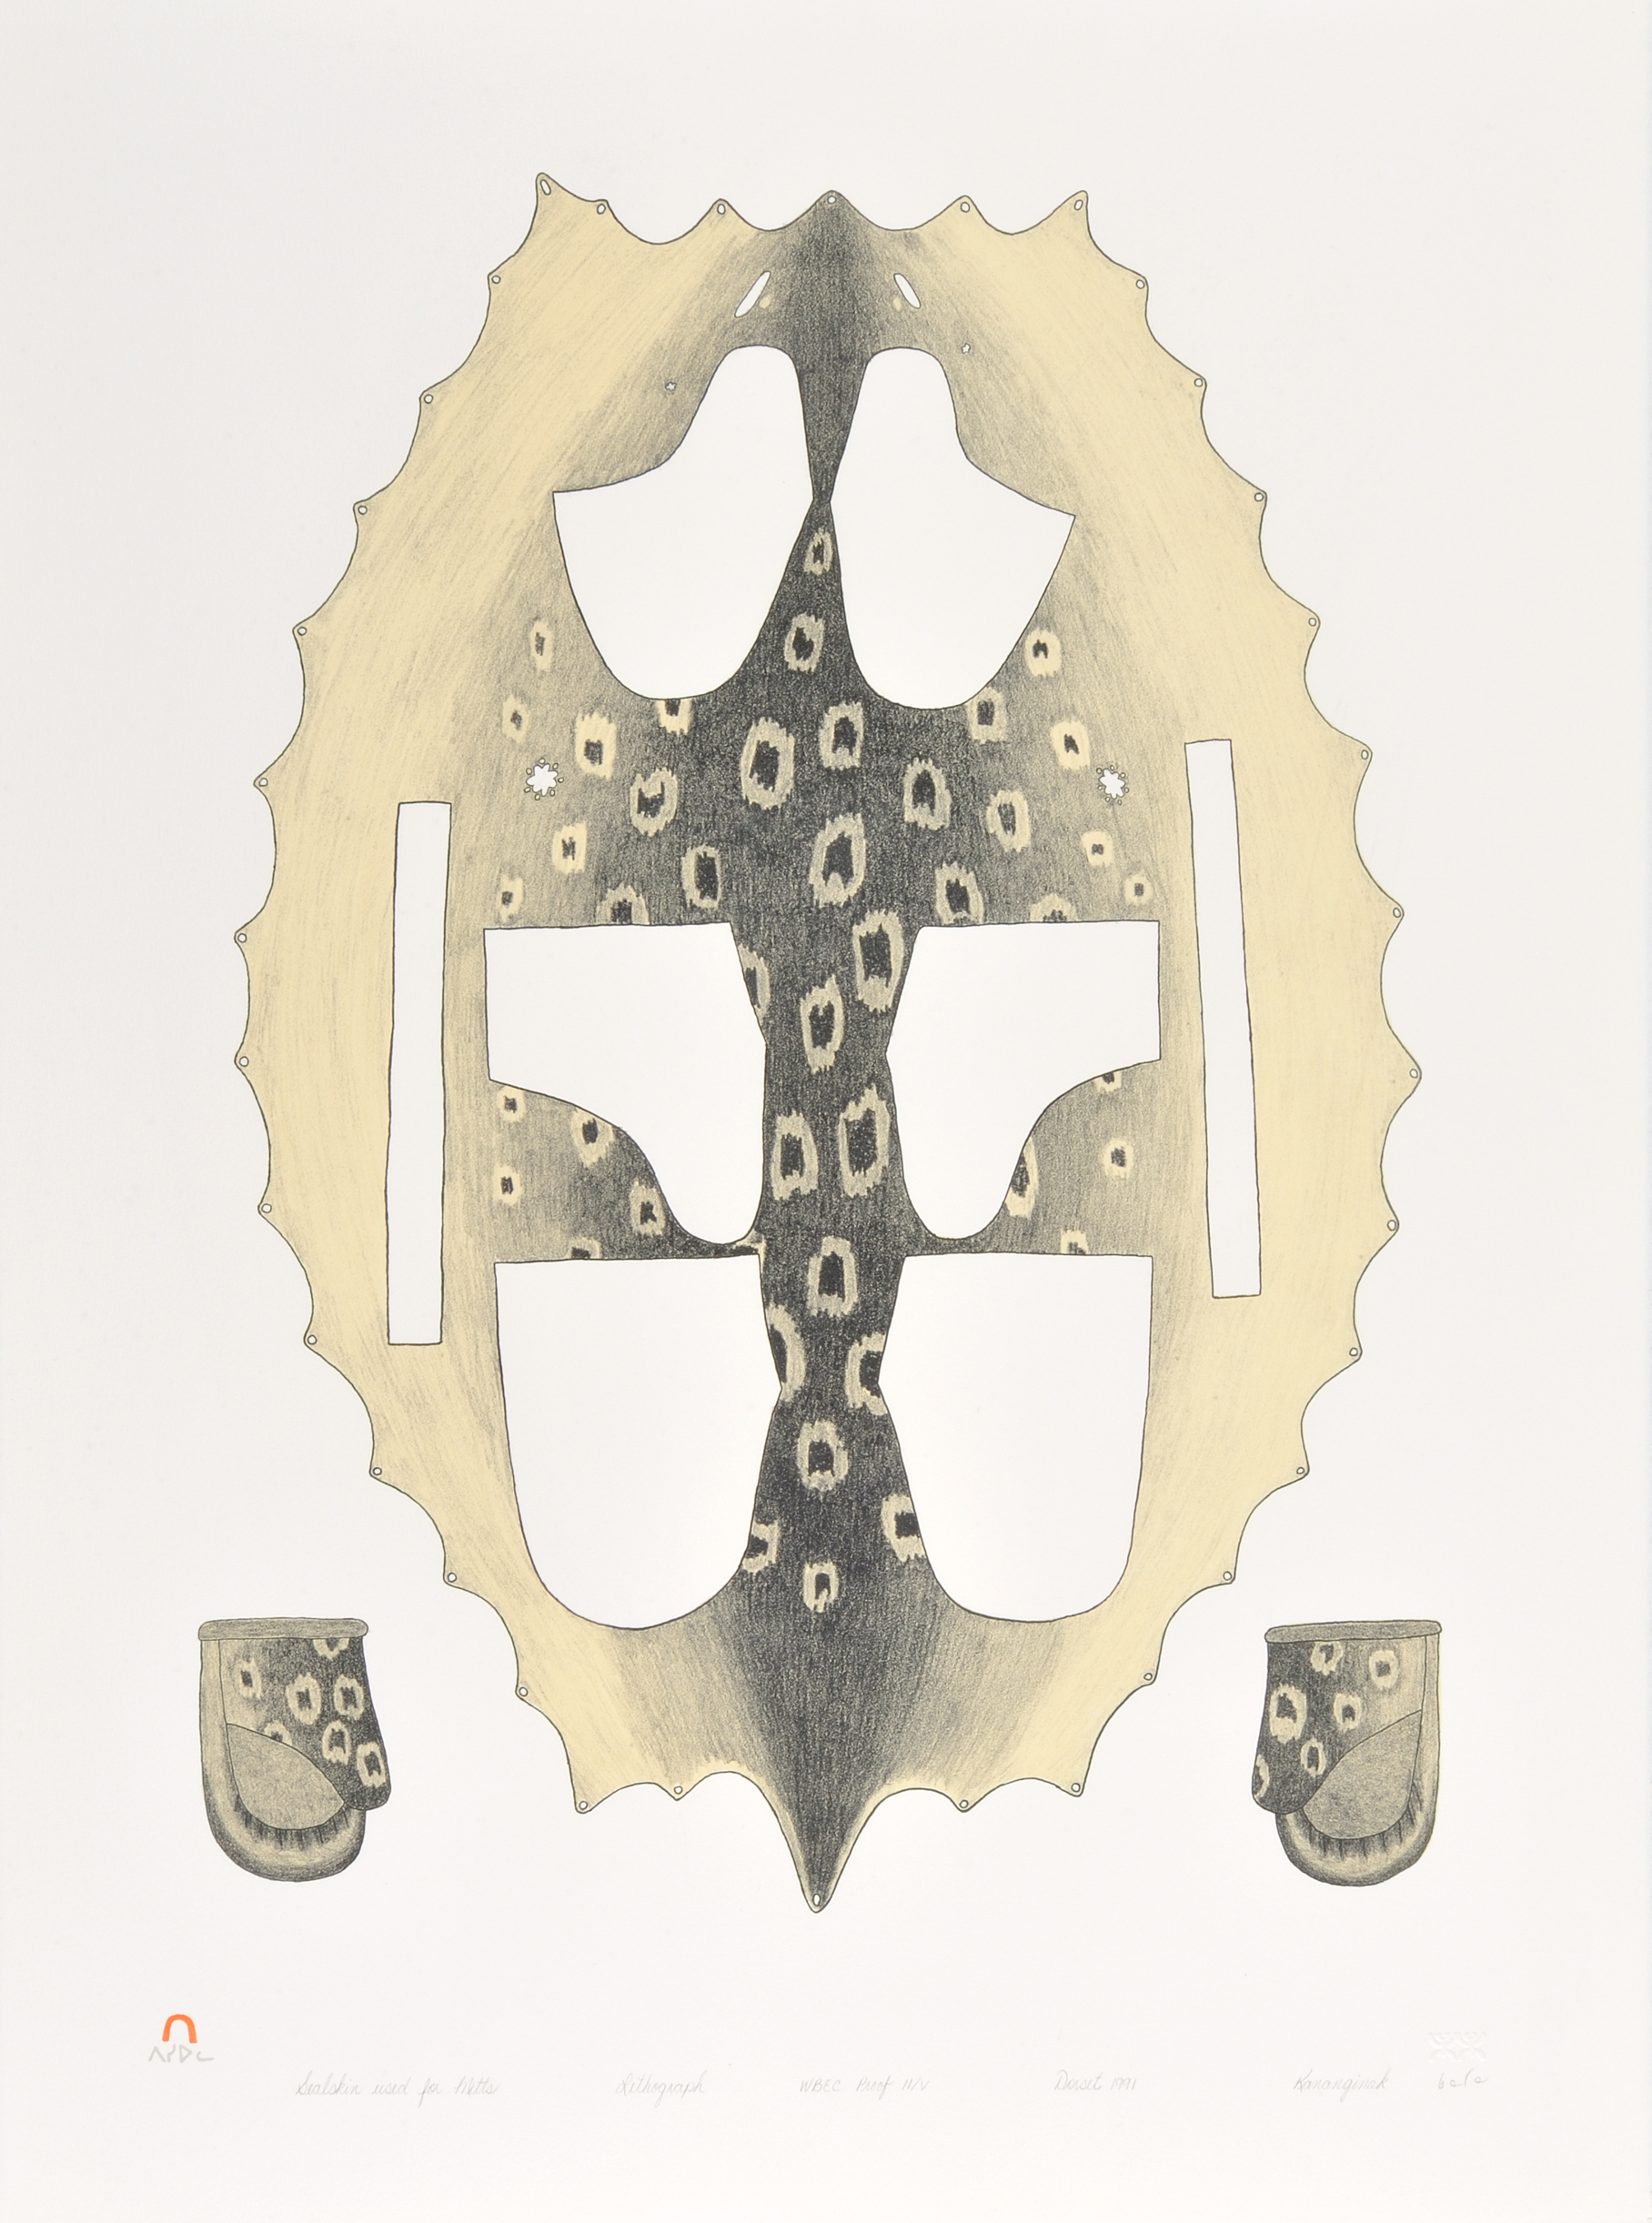 Kananginak Pootoogook  SEALSKIN USED FOR MITTS Lithograph 1991 76 x 56 cm $350.00 CDN Released in the 1991 collection Dorset ID#: 91-07